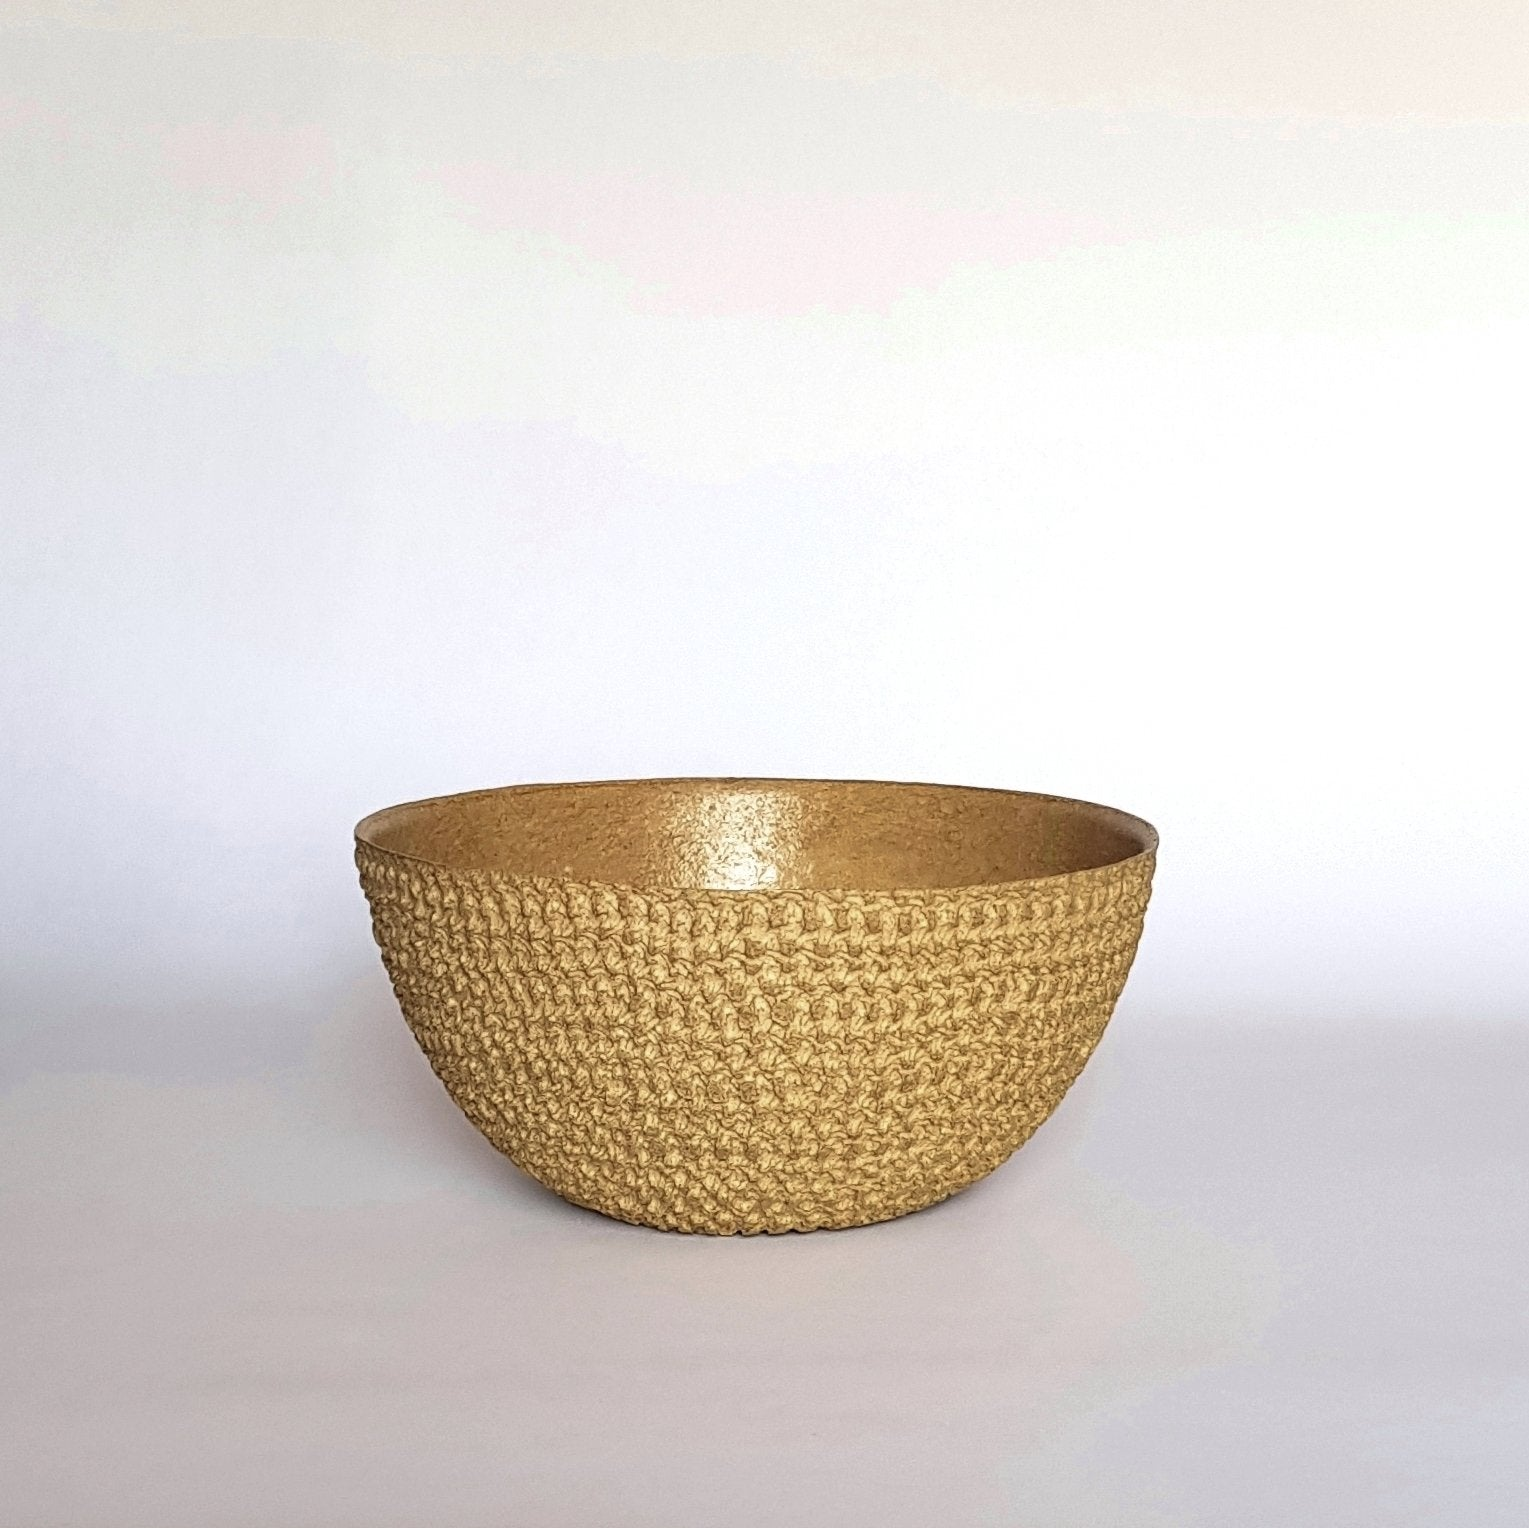 SMALL DOME BOWL